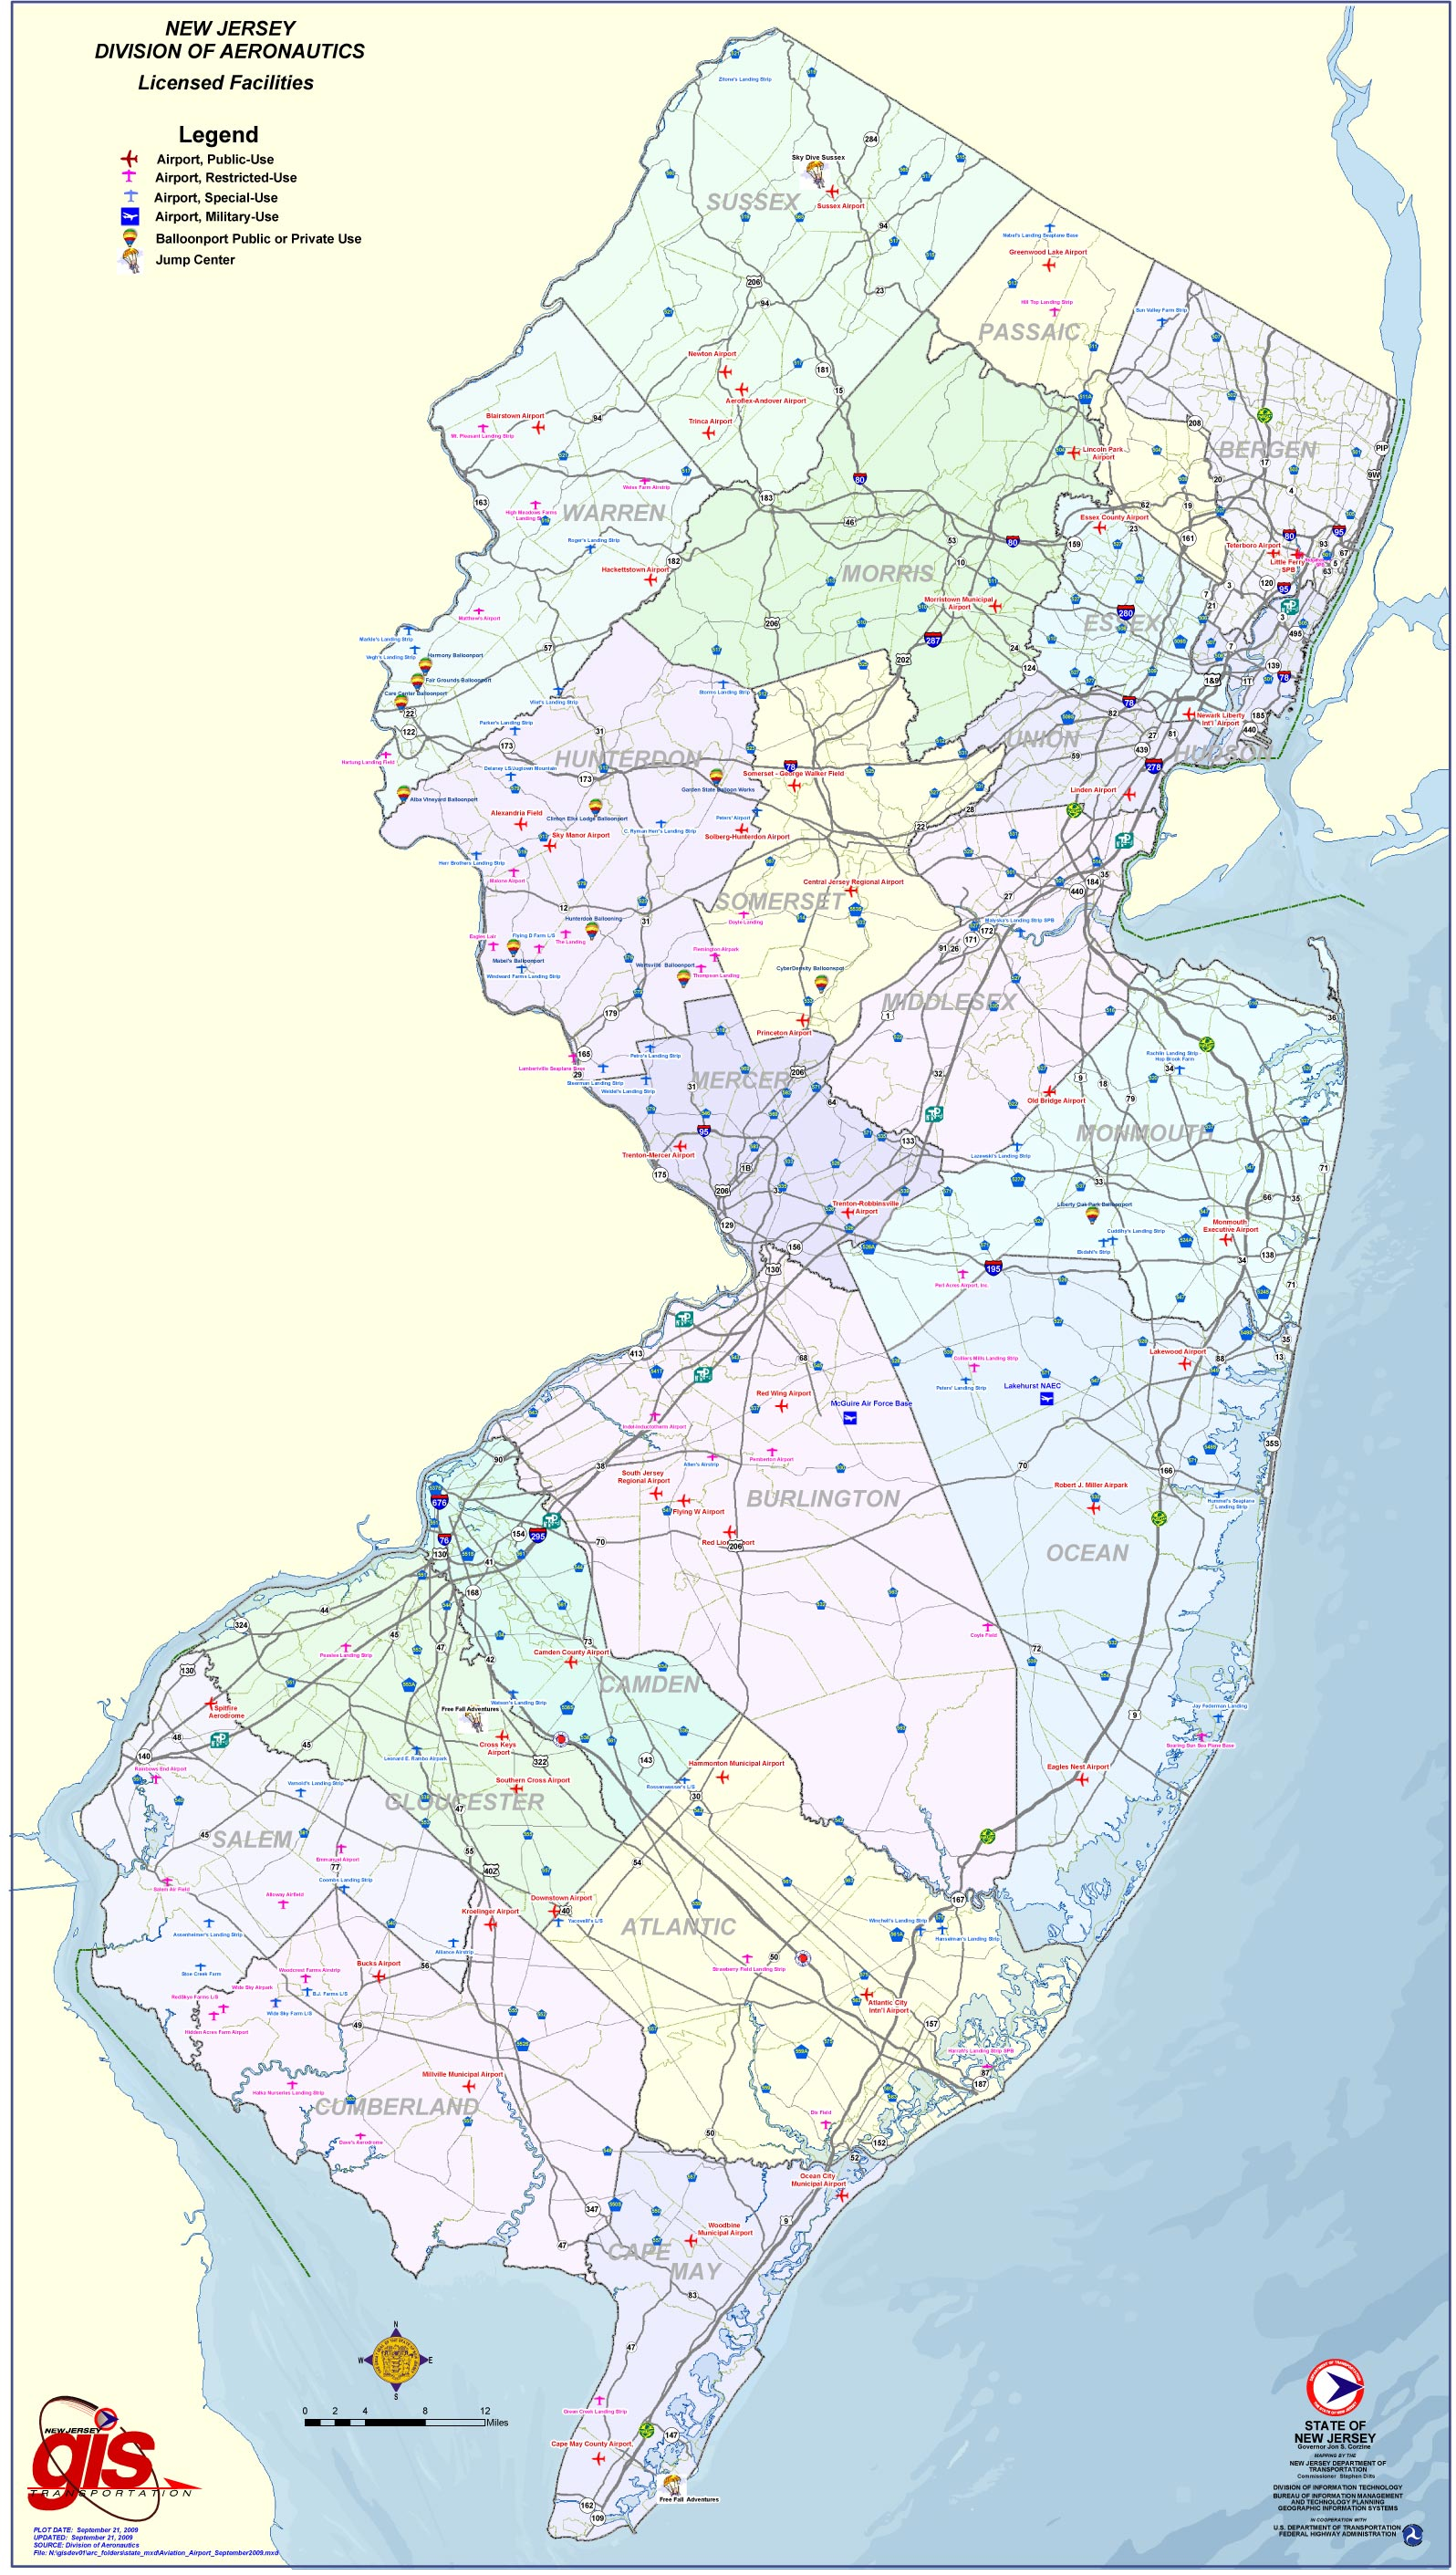 New Jersey Airports Map • Mapsof.net